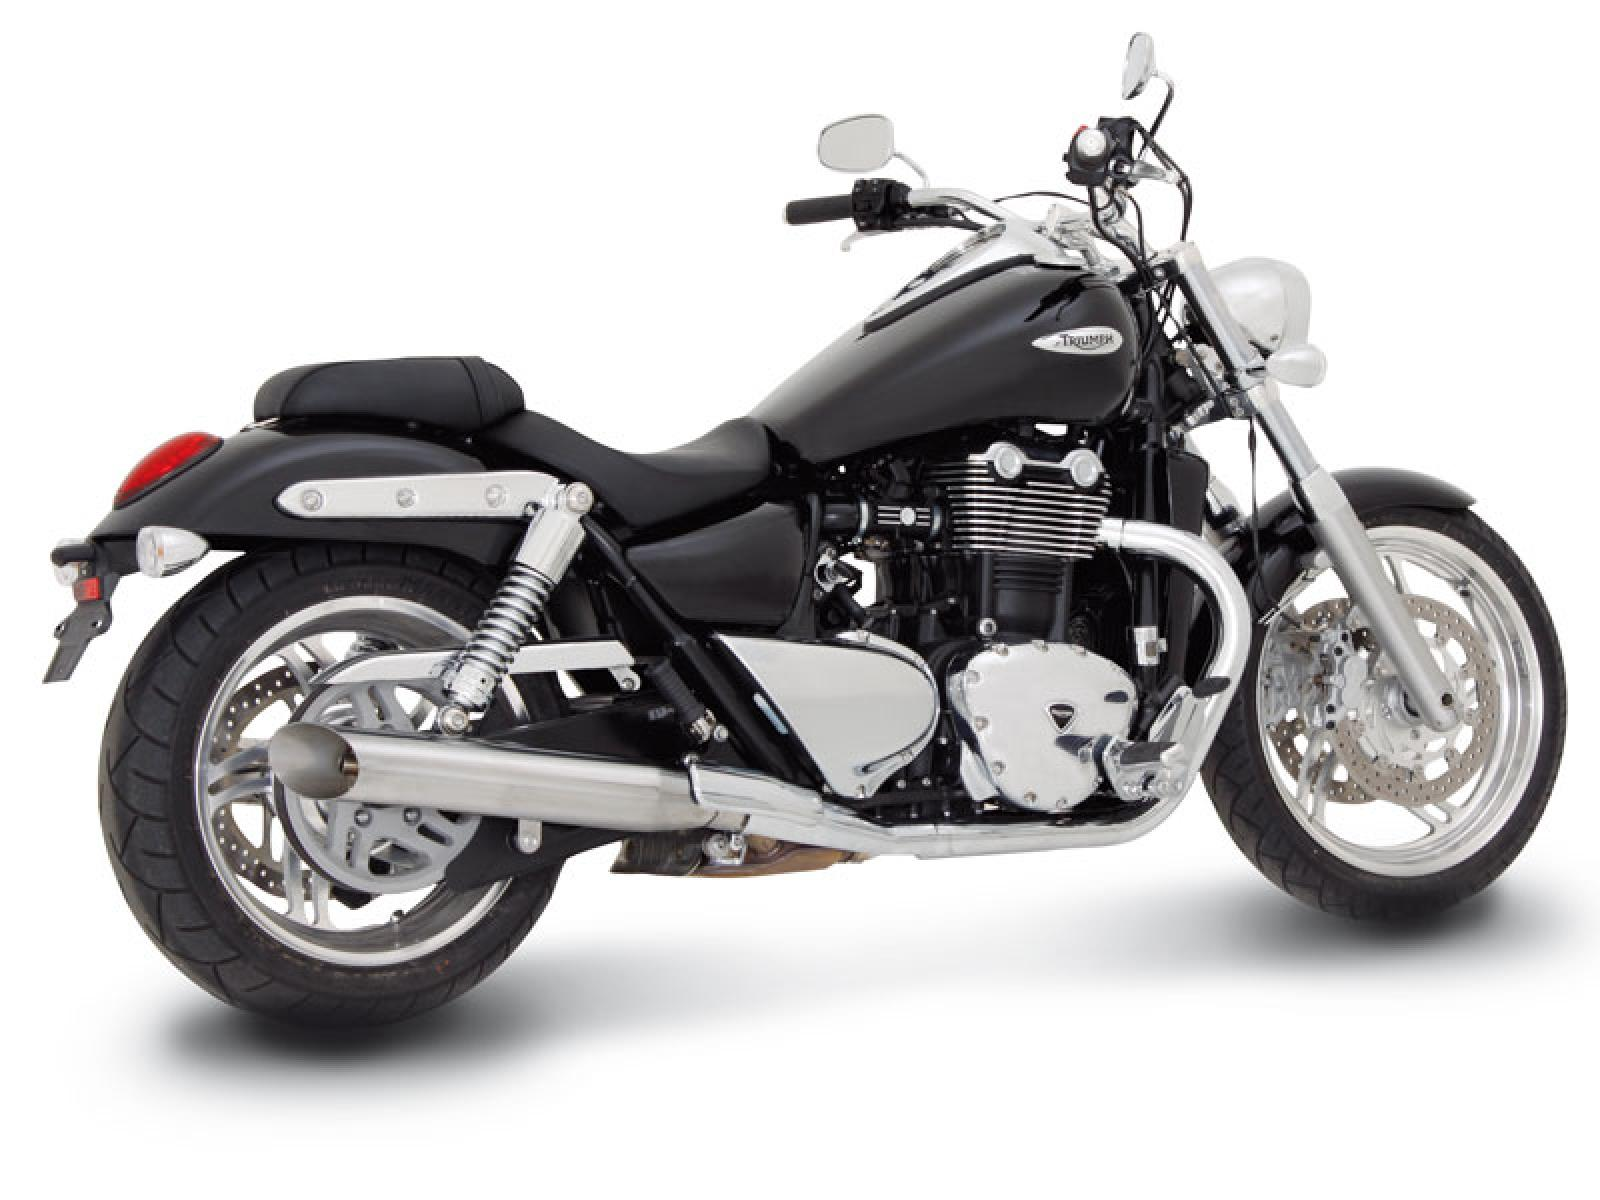 2012 triumph thunderbird moto zombdrive com. Black Bedroom Furniture Sets. Home Design Ideas